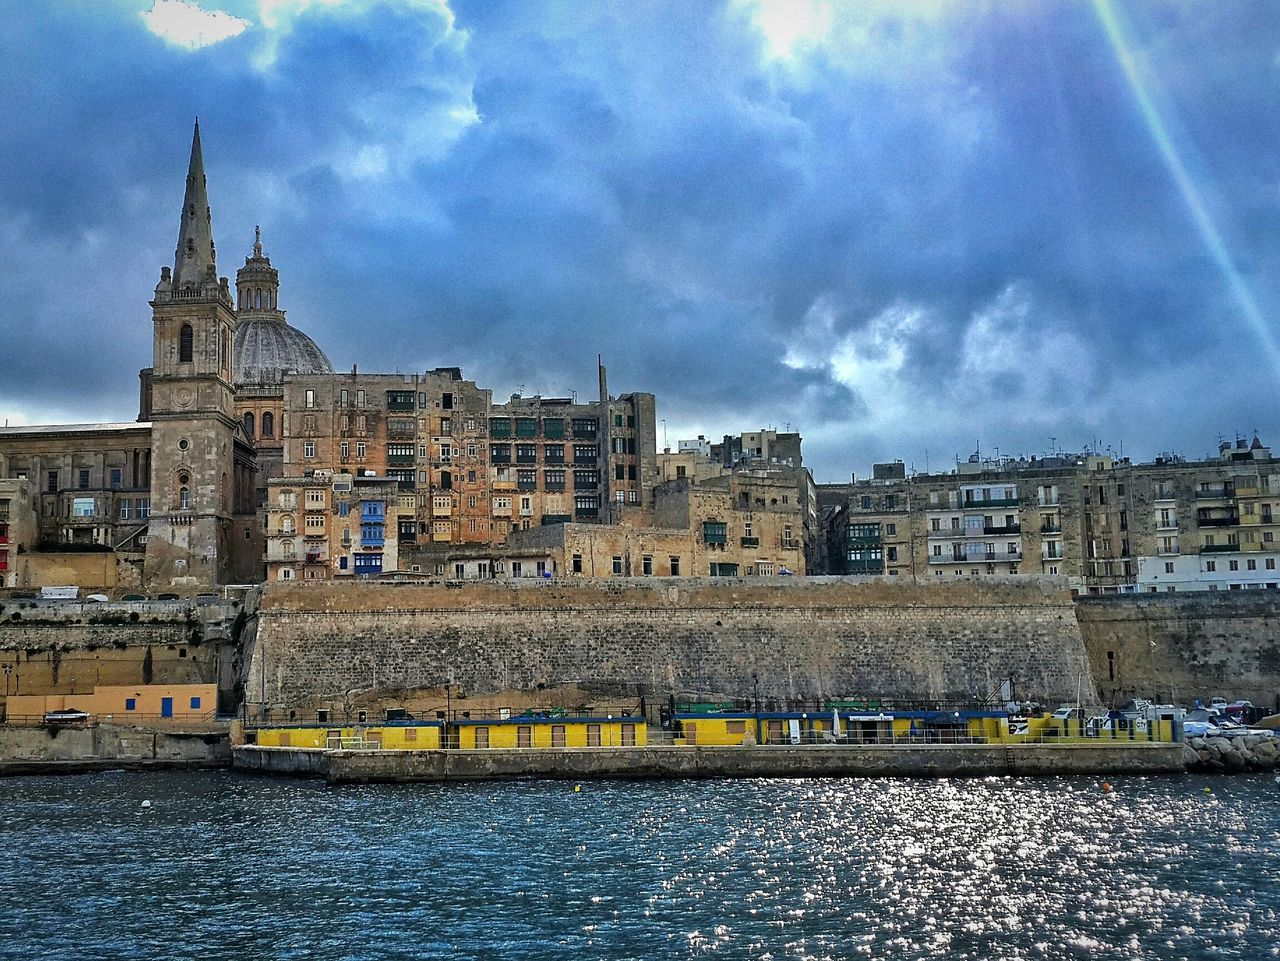 Malta Valetta Travel PhonePhotography Landscape Check This Out Sil EyeEm Gallery Reflection Mobile Photography Eye4photography  Popular Capture The Moment EyeEmFestival15 Getting Inspired Color Portrait Colors Historical Sights Showcase: December EyeEmBestEdits Weather Pro: Your Perfect Weather Shot  Mediterranean  Shades Of Blue Colorsplash My Best Photo 2015